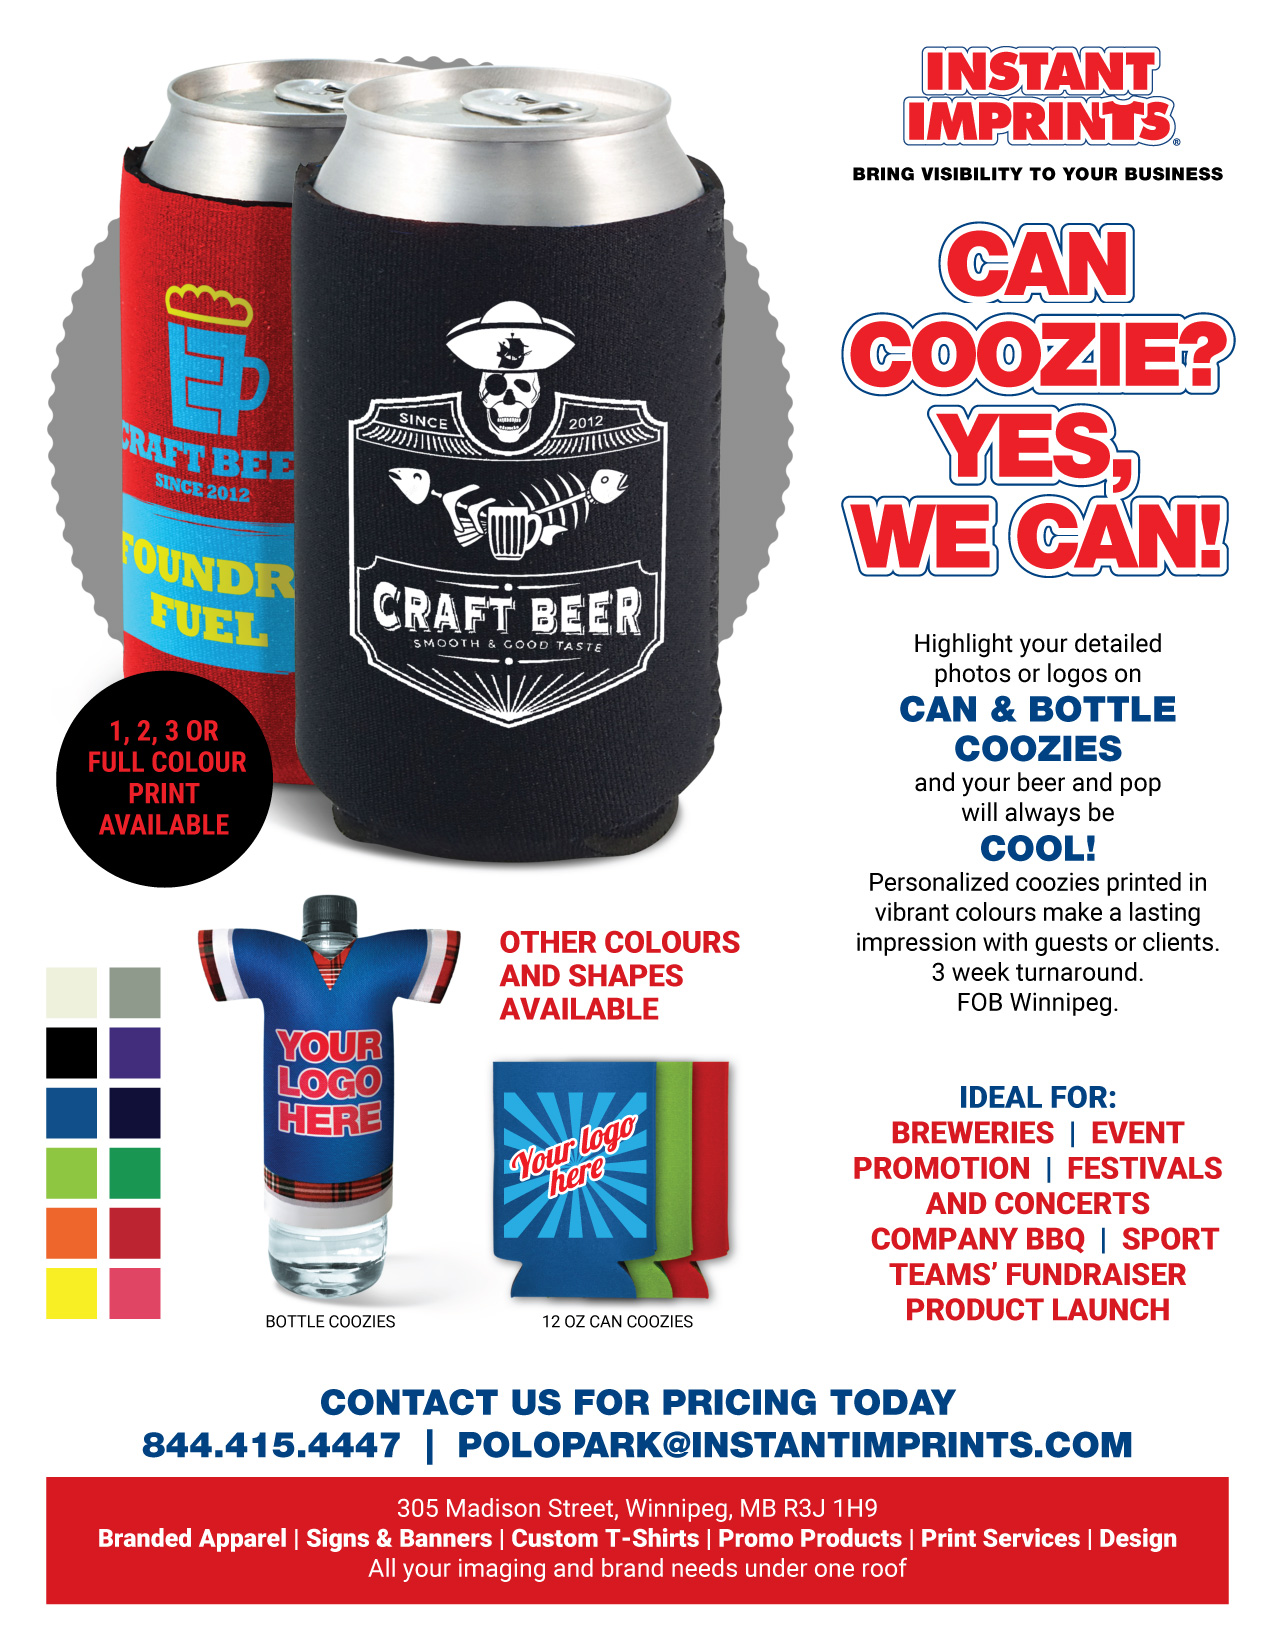 InstantImprints_can&bottle_coozies-01